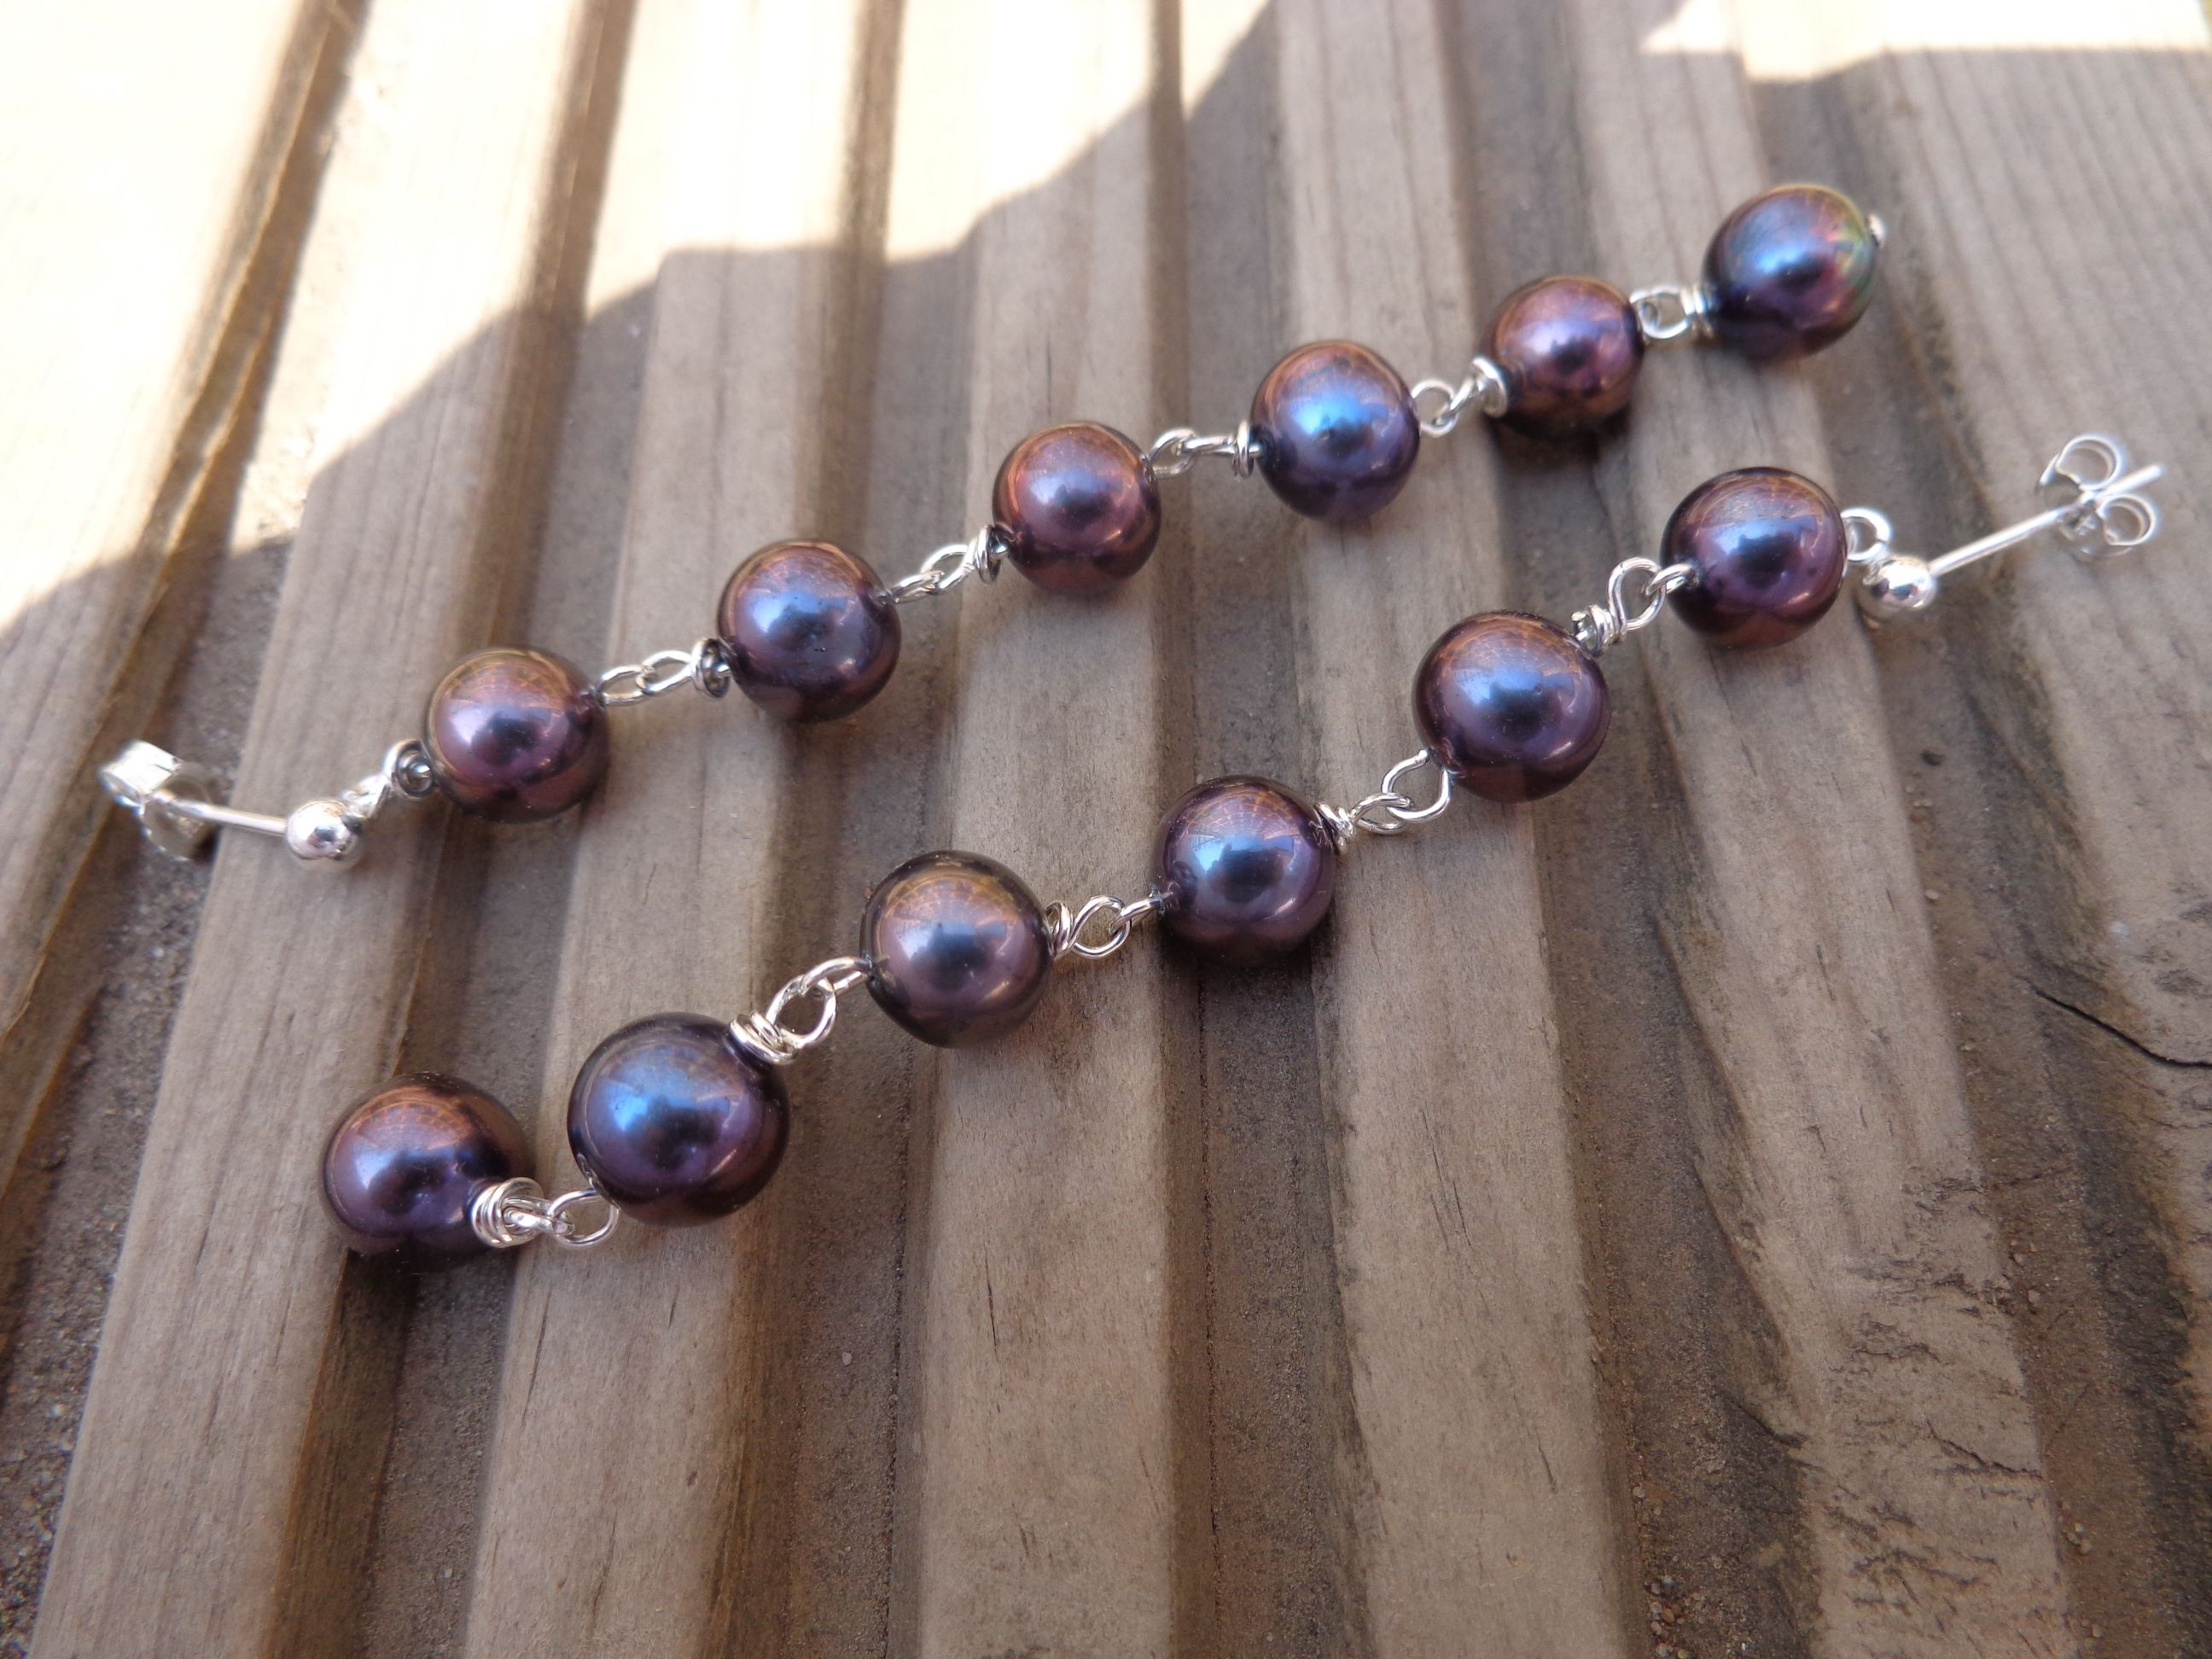 Items Similar To Aaa Black Round 6 Drop Pearl Earrings With Sterling Silver Post Erfly Backs Of Shepherd Hooks And Free Packaging On